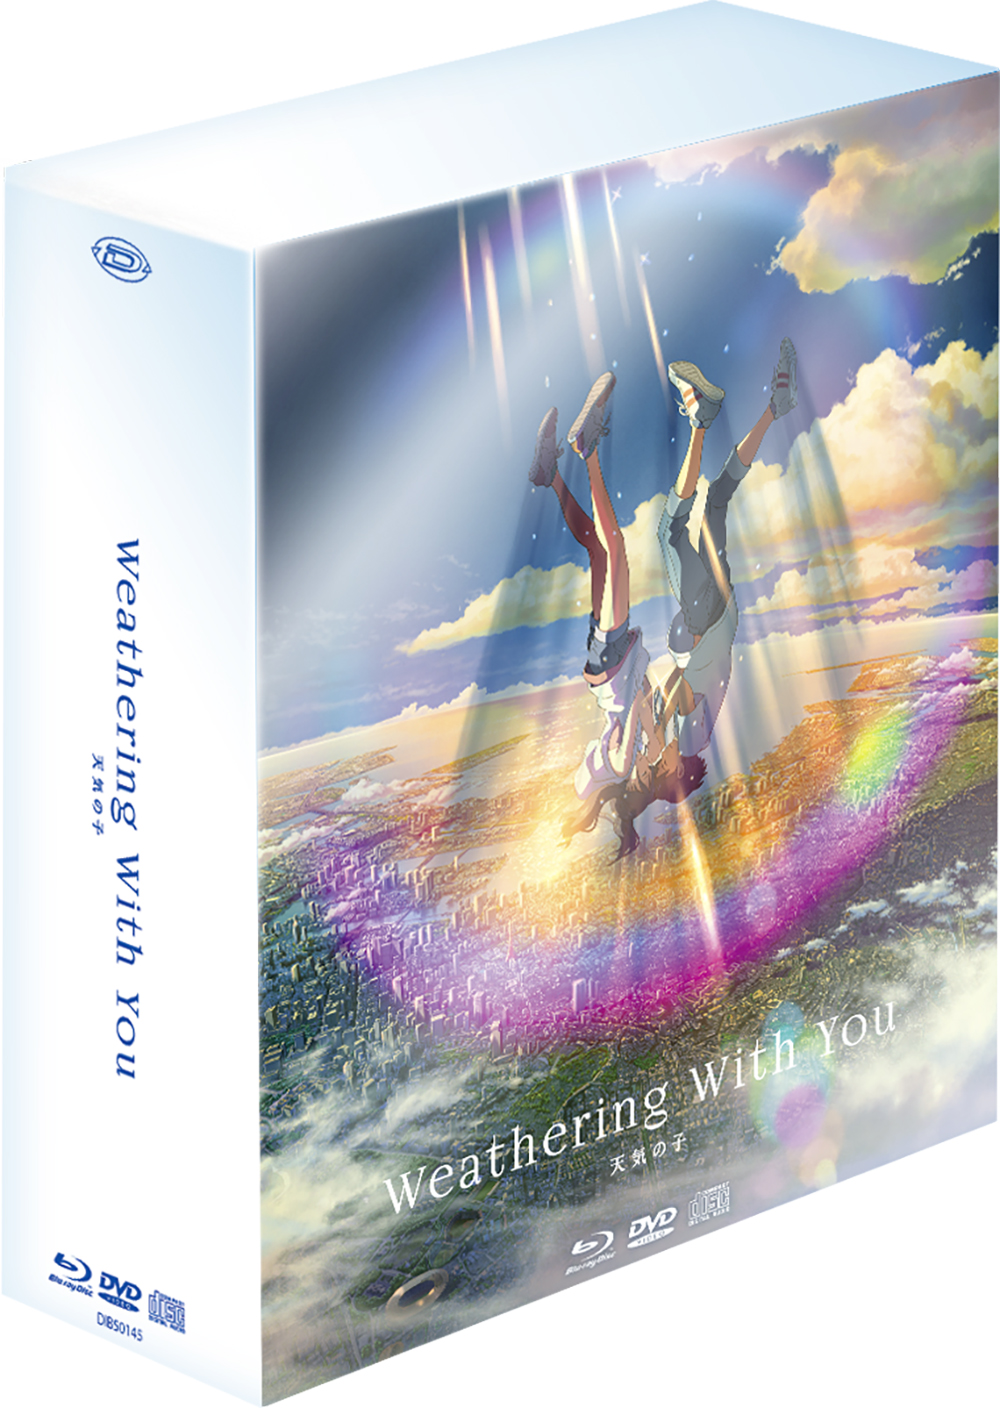 COF.WEATHERING WITH YOU (COLLECTOR'S EDITION) (2 BLU-RAY+DVD+CD+